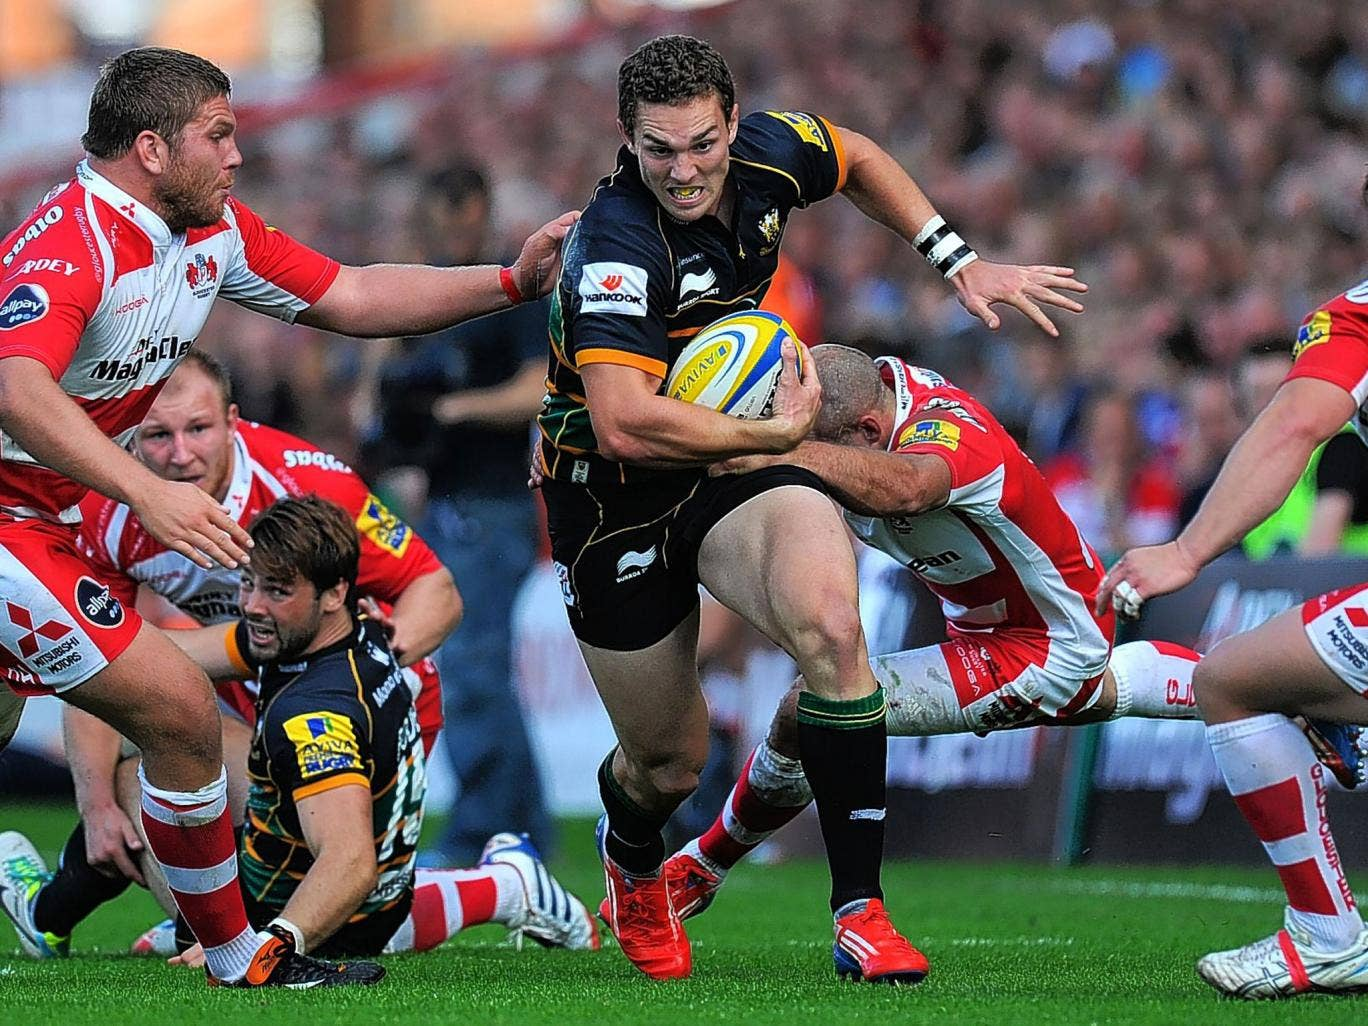 George North on the charge for Northampton in a recent game against Gloucester